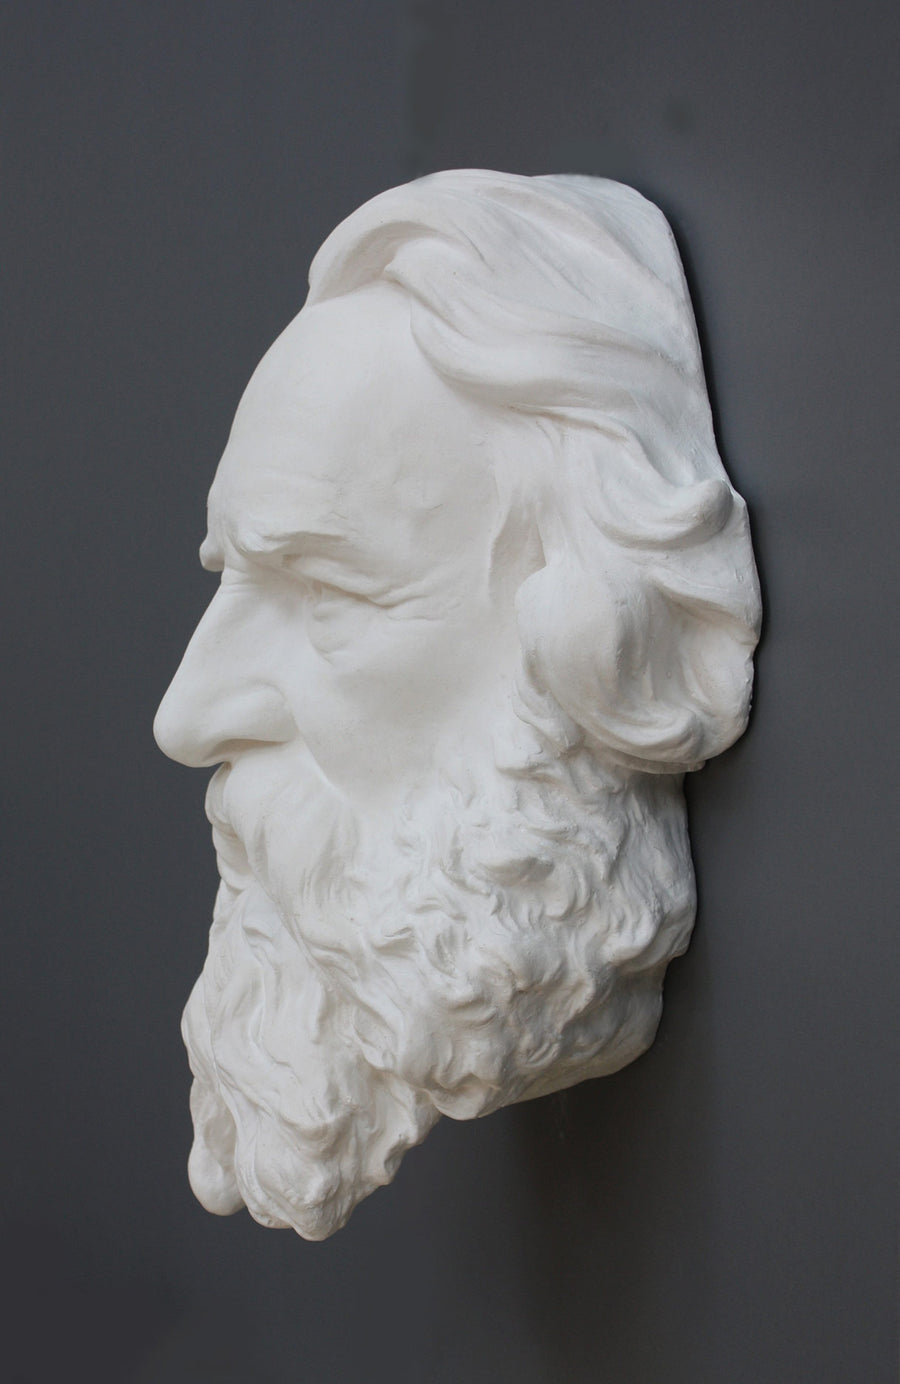 photo of plaster cast of man's head on gray background from side view